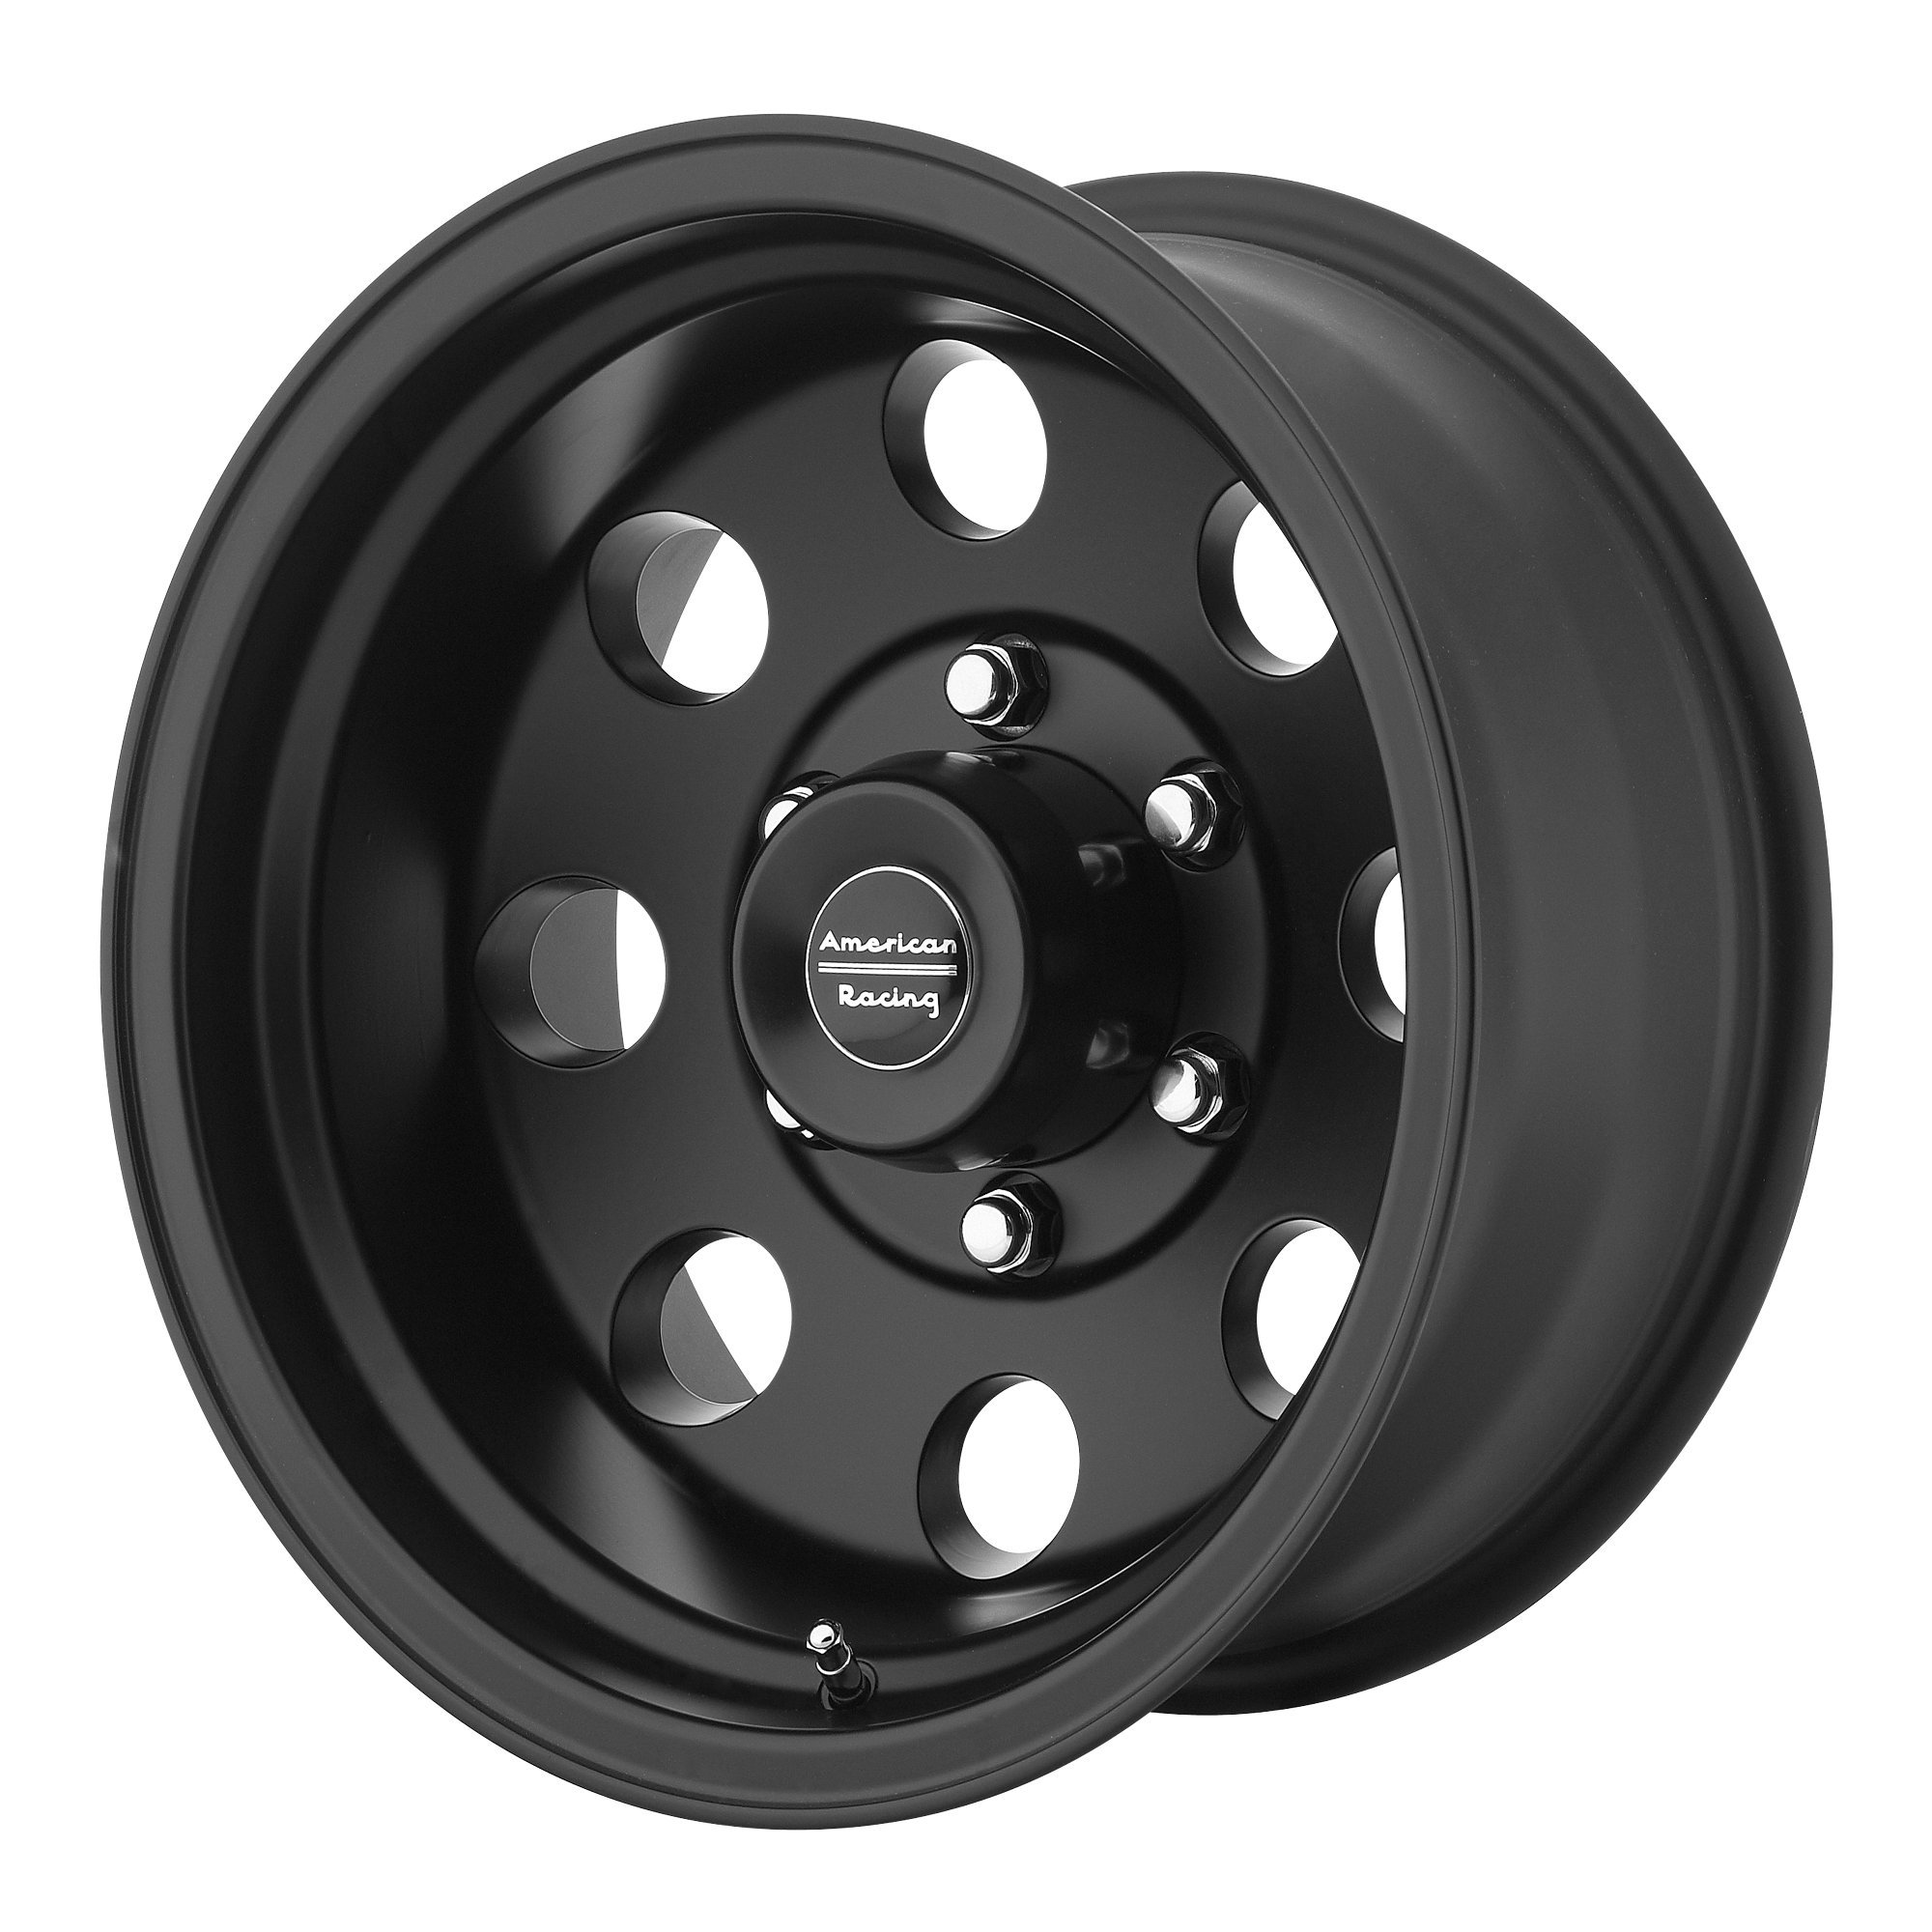 American Racing Custom Wheels AR23 Satin Black Wheel With Clearcoat (15x10''/5x139.7mm, -44mm offset)